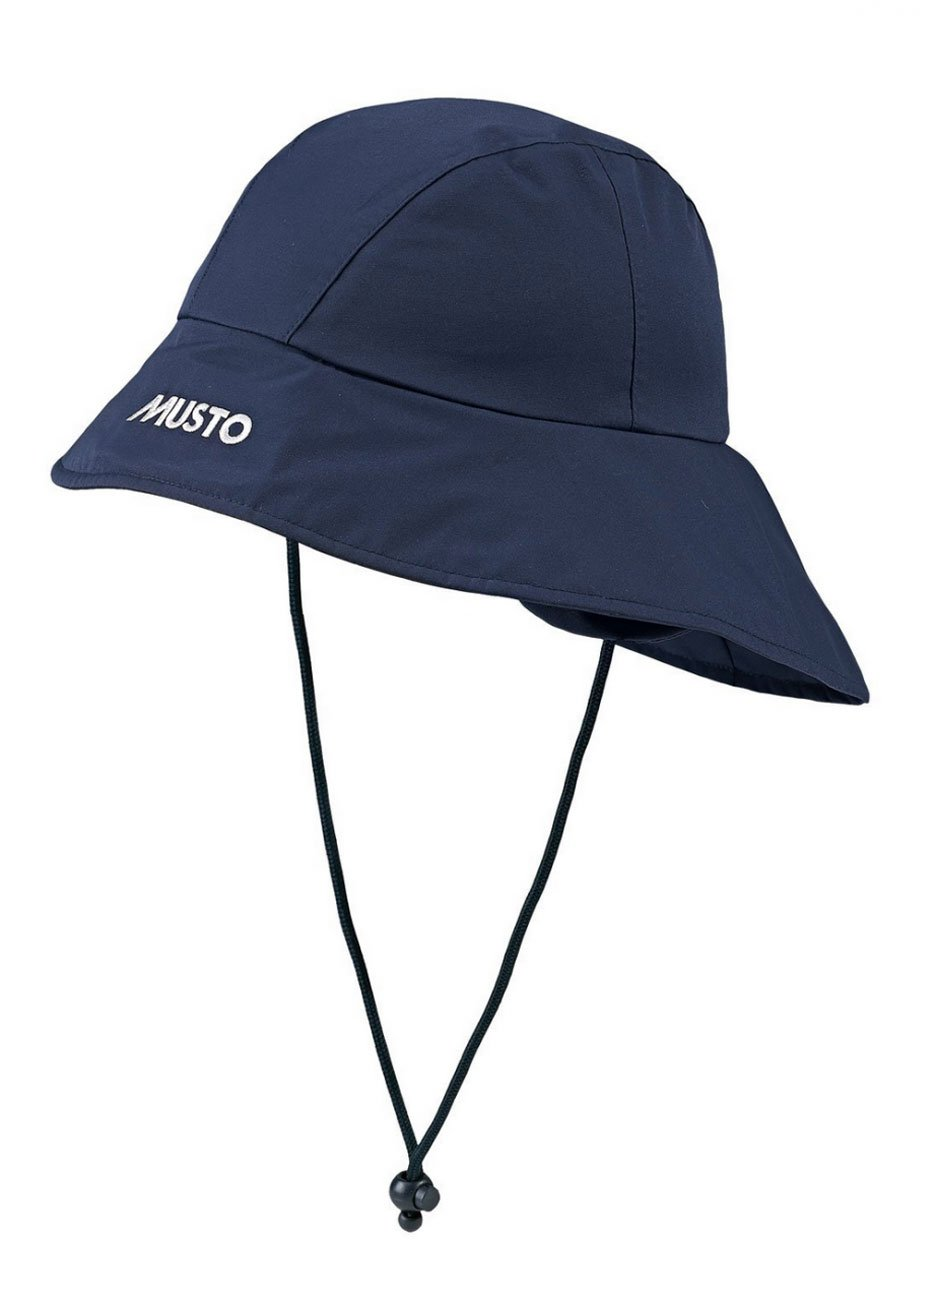 Musto SouWester Hat in Navy Blue AS0271.